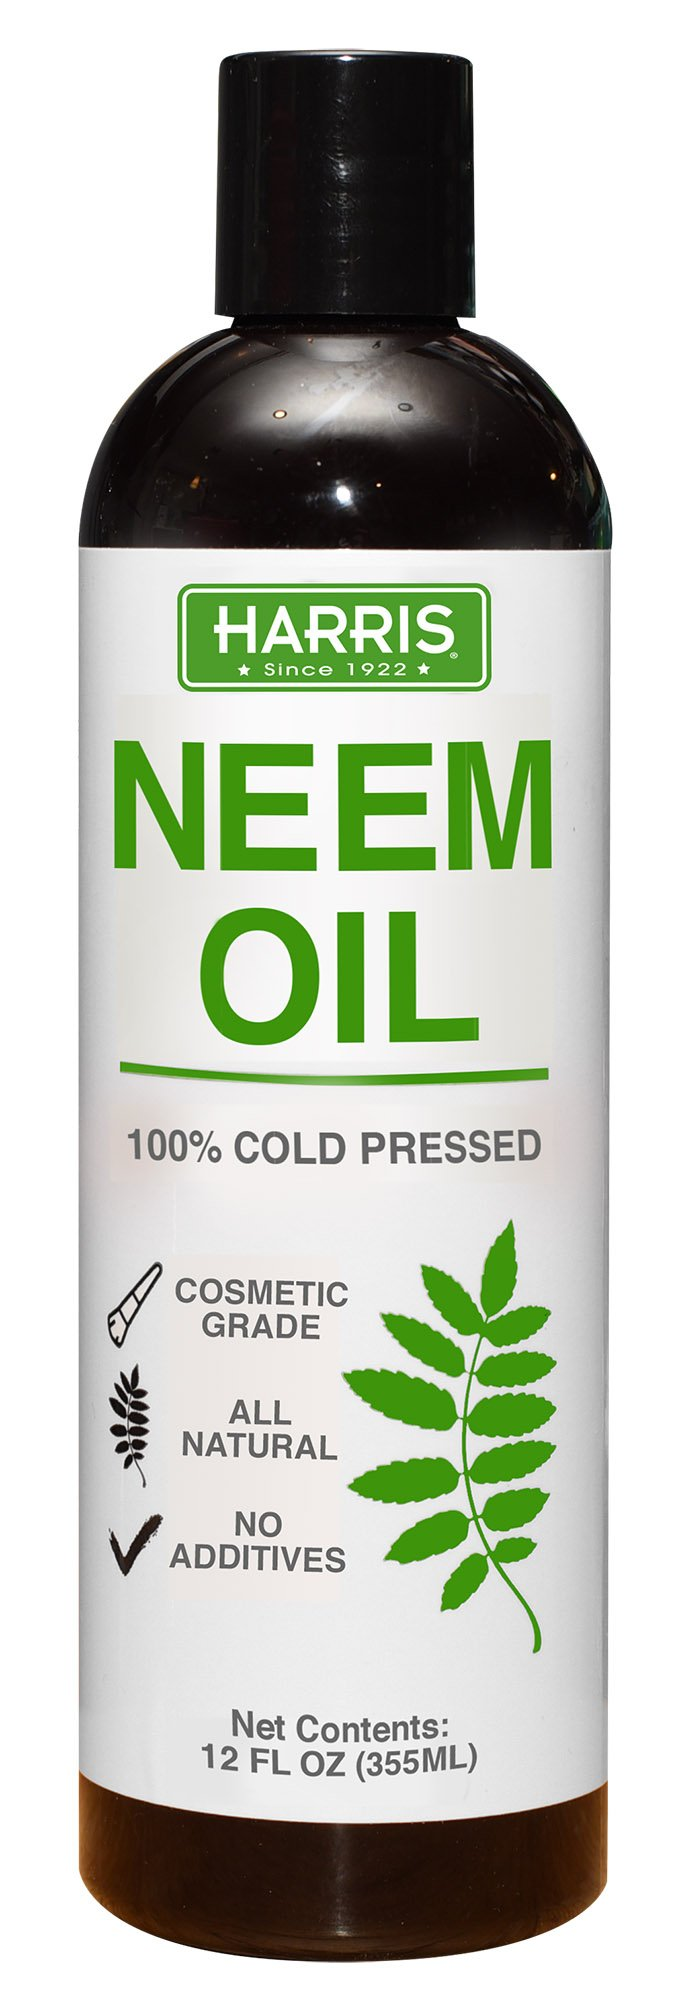 Harris Neem Oil, 100% Cold Pressed and Unrefined for Plants, Skin and Hair, 12oz Cosmetic Grade by Harris